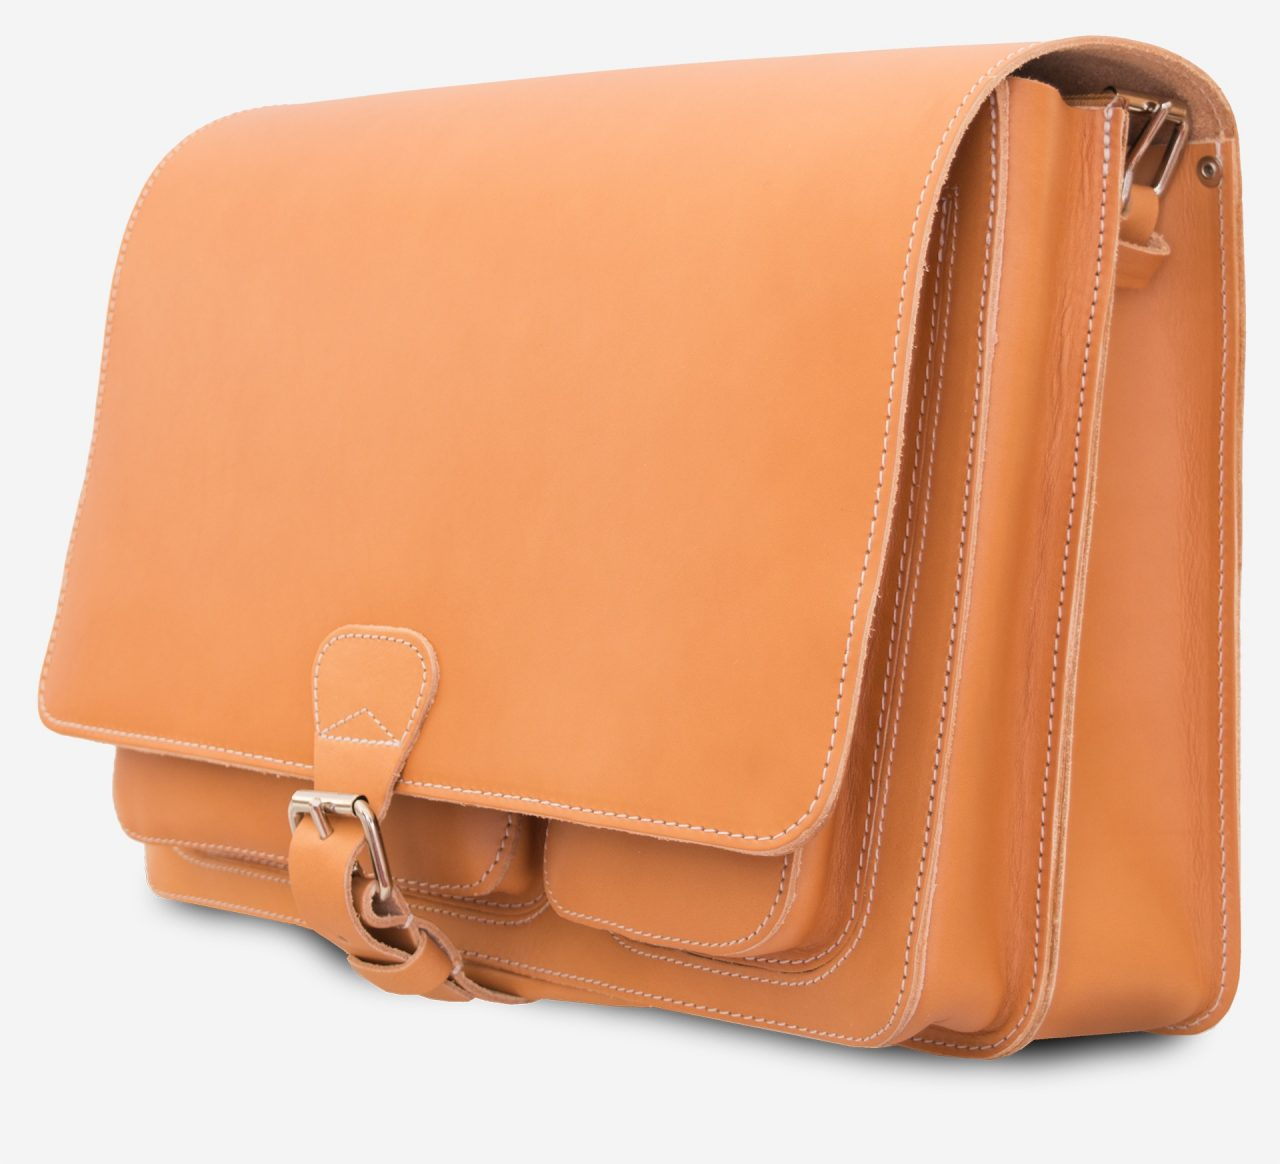 Side view of the Ruitertassen tan leather messenger bag.